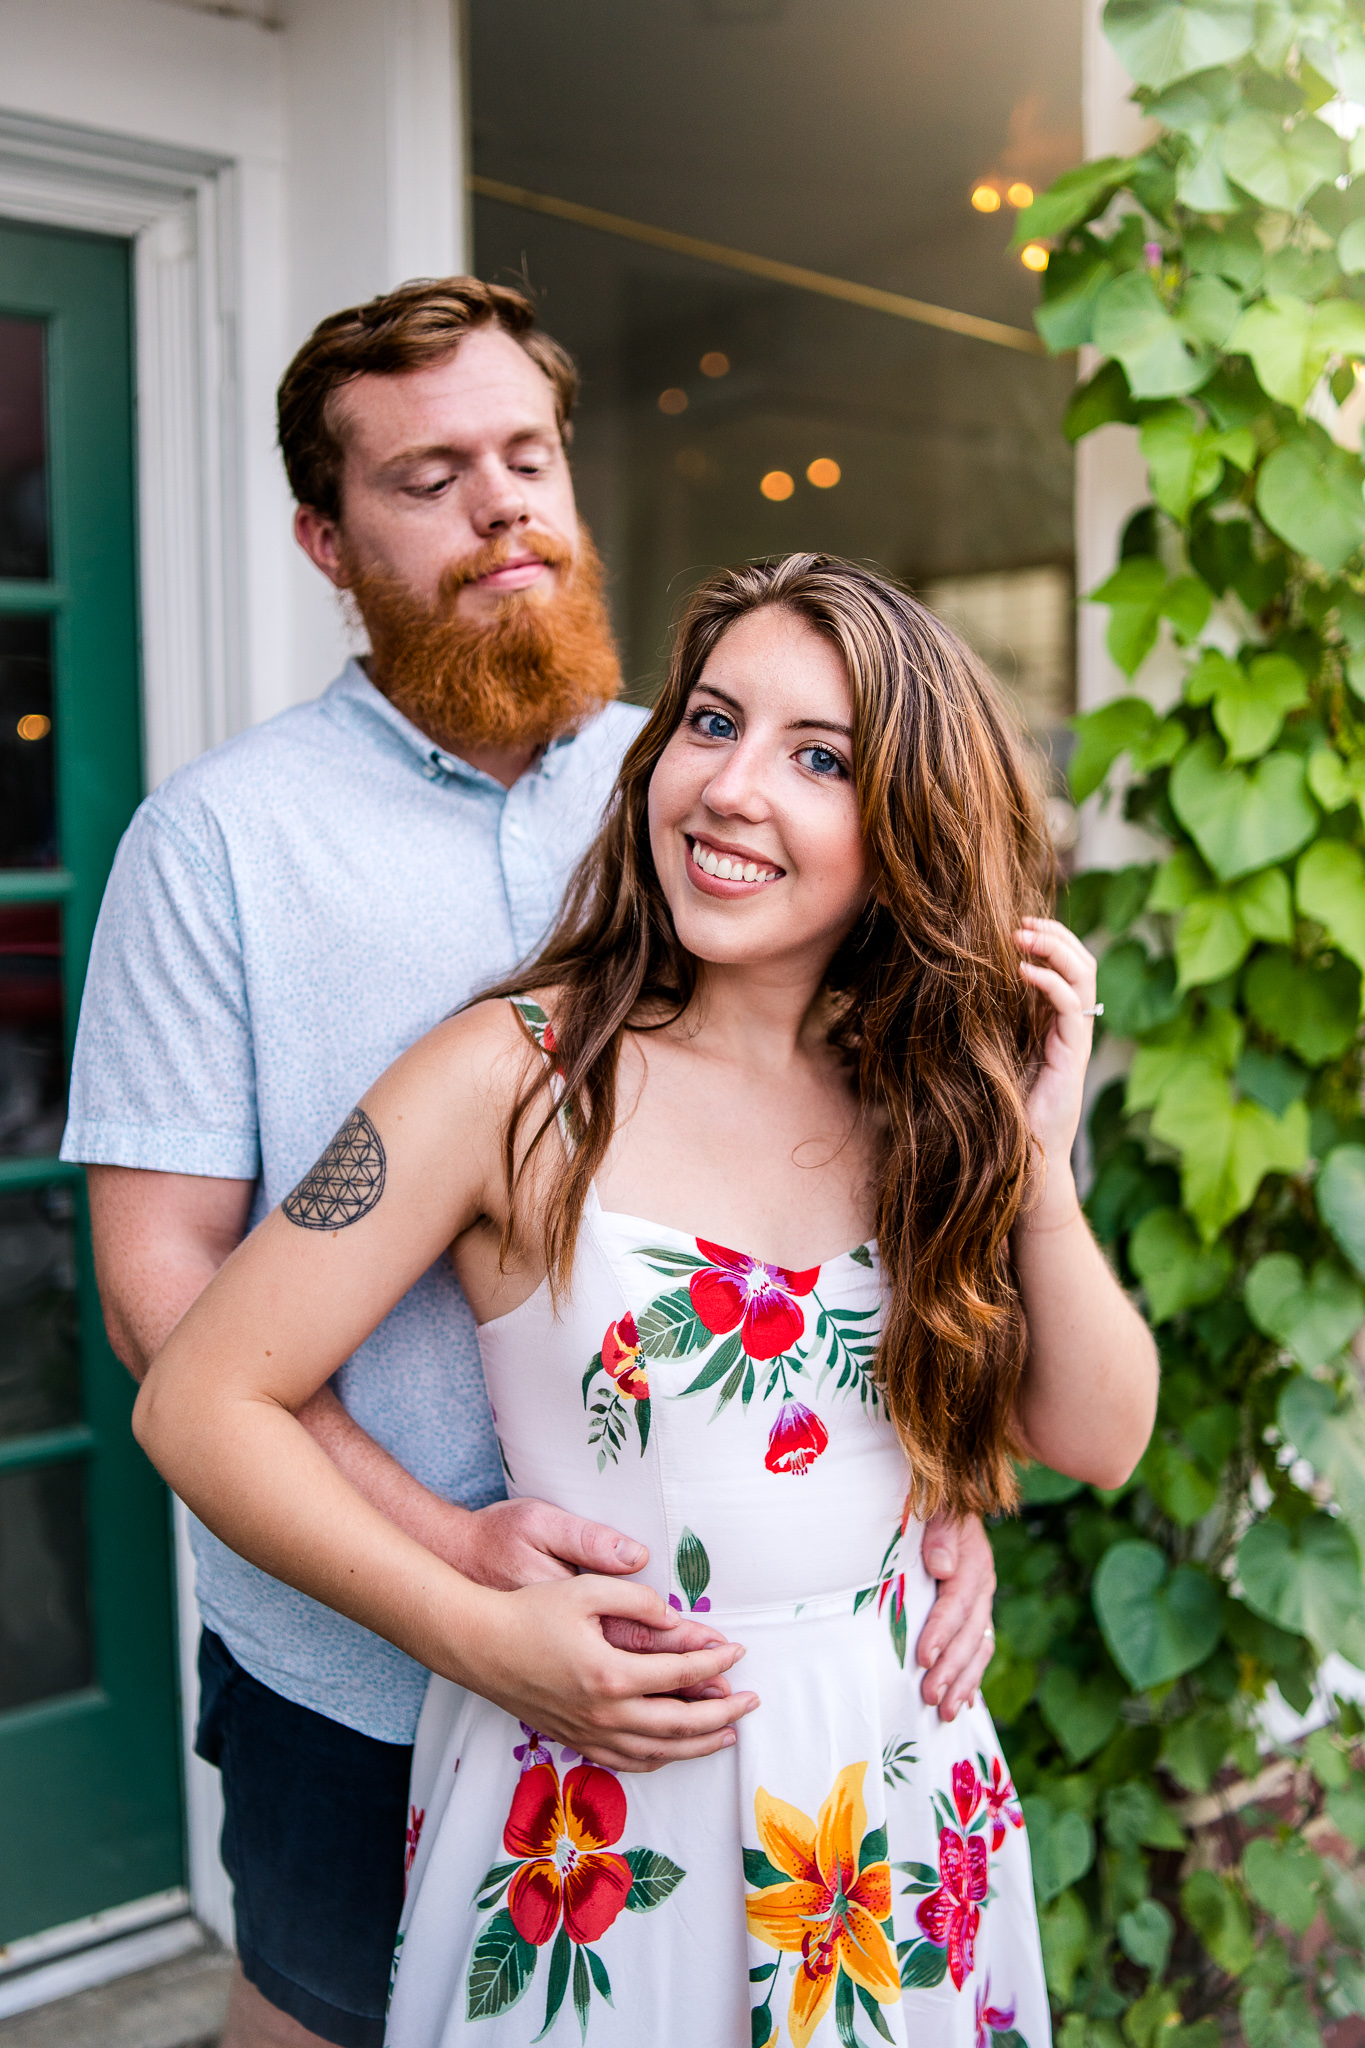 An engaged couple pose in front of a flower shop during their summer sunset engagement session in Historic Occoquan, Northern Virginia